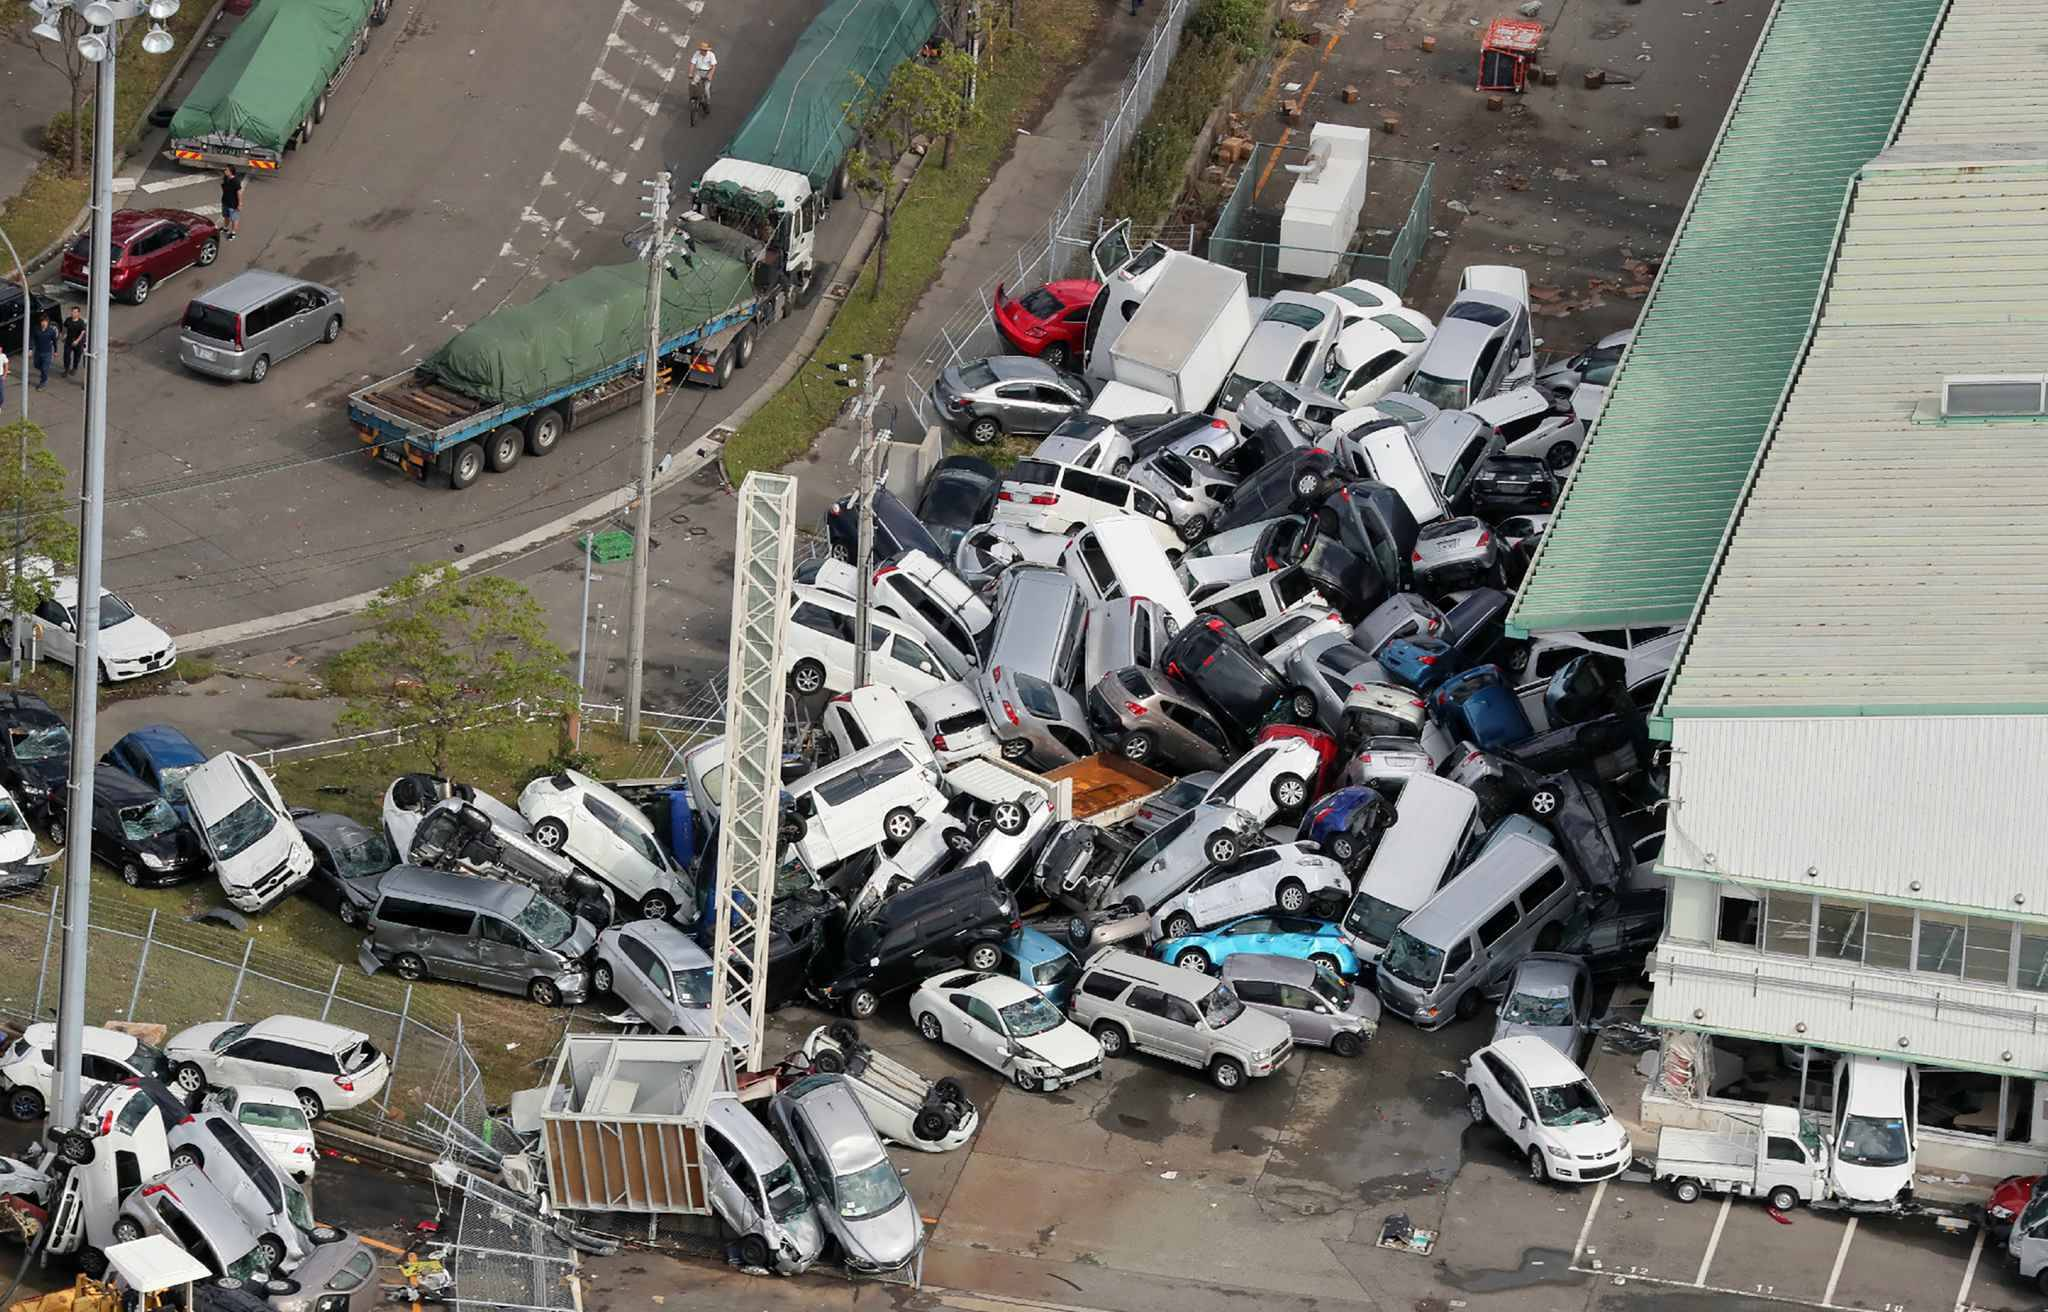 An aerial view from a Jiji Press helicopter shows vehicles piled in a heap due to strong winds in Kobe, Hyogo prefecture on September 5, 2018, after typhoon Jebi hit the west coast of Japan. The toll in the most powerful typhoon to hit Japan in a quarter century rose on September 5 to nine, with thousands stranded at a major airport because of storm damage.